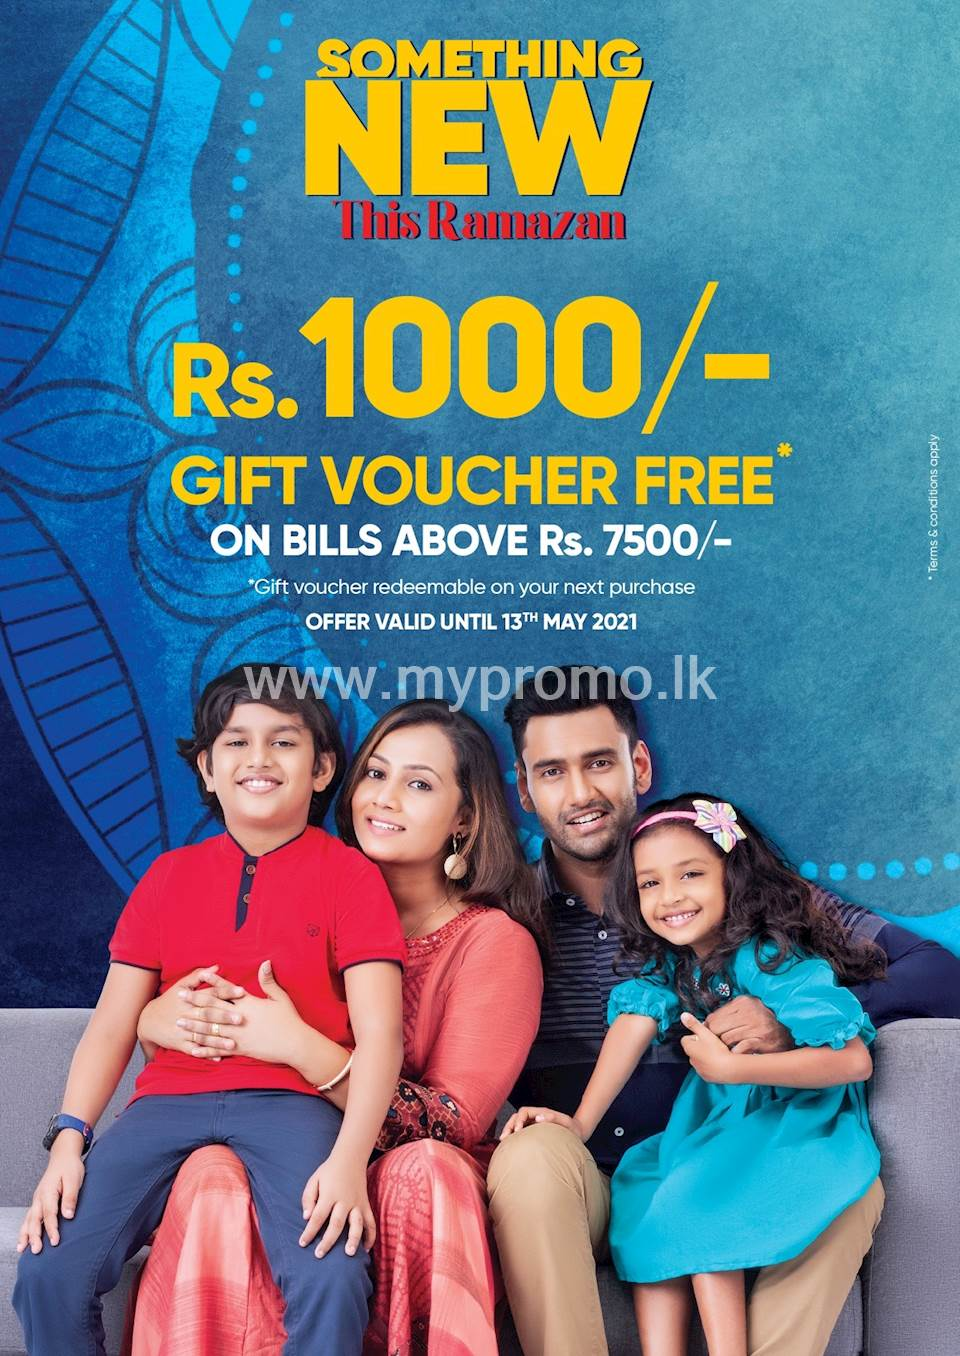 Get a free gift voucher of rupees 1000/= on bills above rupees 7500/= at Fashion Bug